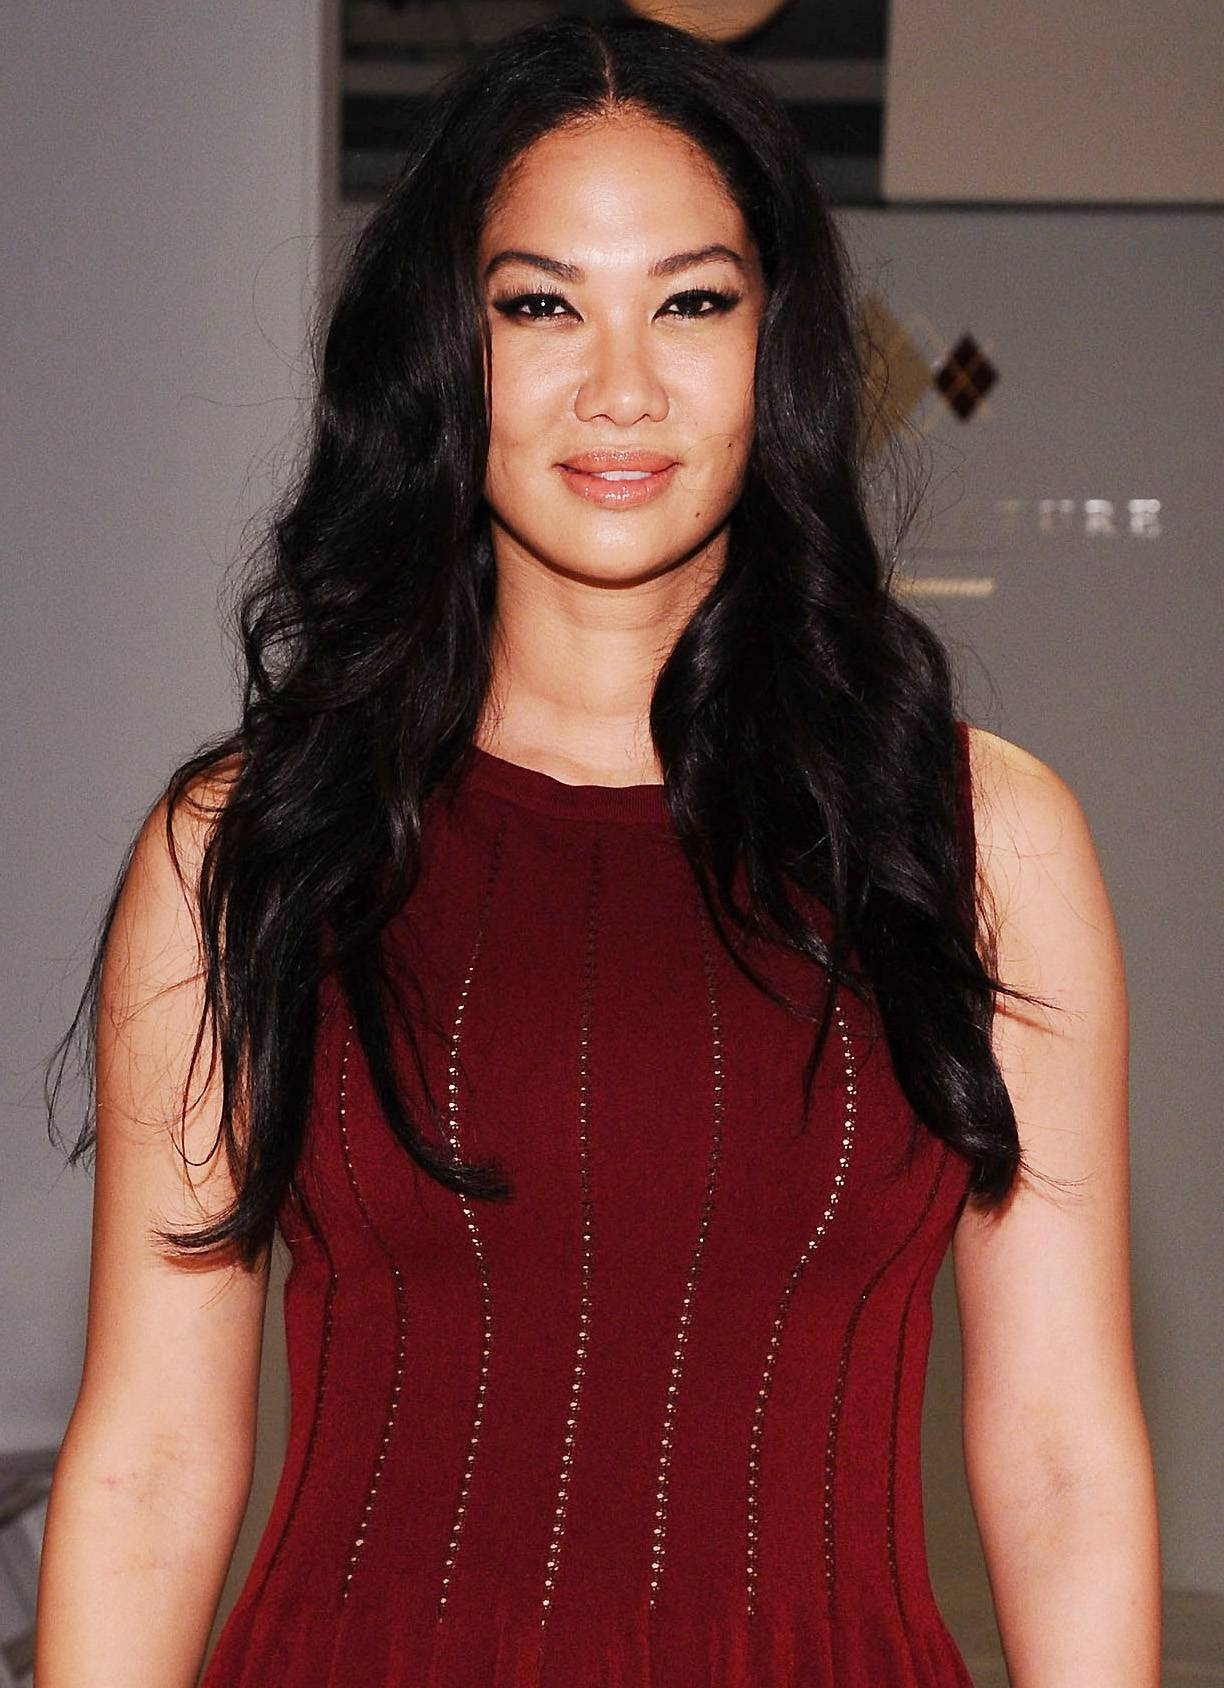 Kimora Lee Simmons Loves the Kids - Kimora Lee Simmons has announced the creation of a $1 Million scholarship fund for students pursuing careers in fashion.According to reports, the scholarship fund will underwrite scholarships at the Fashion Institute of Technology, across all disciplines, the Fashion Institute of Design & Merchandising (FIDM) and Rush Teens (a segment of an art-focused philanthropic initiative founded by her ex-husband, Russell Simmons).?This is like wish fulfillment on my end, to tap into that formal education. I never had someone put money into my career or my business ? it?s very tough out there, and it will never get any easier!? says Simmons.The fund will also include an internship program with her soon to be launched KLS Collection.(Photo: Ilya S. Savenok/Getty Images)